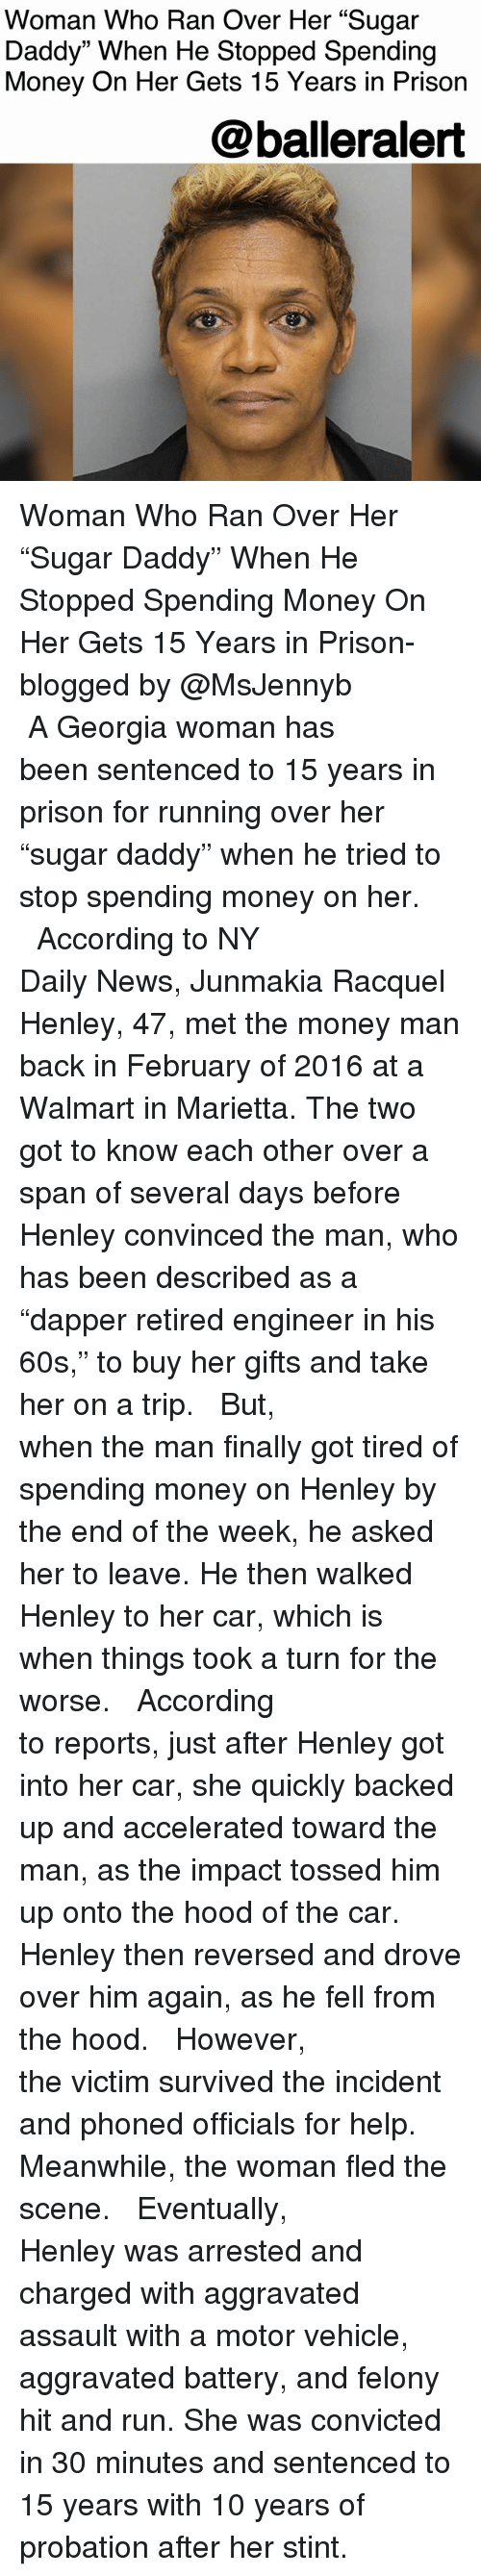 """Memes, Money, and News: Woman Who Ran Over Her """"Sugar  Daddy"""" When He Stopped Spending  Money On Her Gets 15 Years in Prison  @balleralert Woman Who Ran Over Her """"Sugar Daddy"""" When He Stopped Spending Money On Her Gets 15 Years in Prison- blogged by @MsJennyb ⠀⠀⠀⠀⠀⠀⠀⠀⠀ ⠀⠀⠀⠀⠀⠀⠀⠀⠀ A Georgia woman has been sentenced to 15 years in prison for running over her """"sugar daddy"""" when he tried to stop spending money on her. ⠀⠀⠀⠀⠀⠀⠀⠀⠀ ⠀⠀⠀⠀⠀⠀⠀⠀⠀ According to NY Daily News, Junmakia Racquel Henley, 47, met the money man back in February of 2016 at a Walmart in Marietta. The two got to know each other over a span of several days before Henley convinced the man, who has been described as a """"dapper retired engineer in his 60s,"""" to buy her gifts and take her on a trip. ⠀⠀⠀⠀⠀⠀⠀⠀⠀ ⠀⠀⠀⠀⠀⠀⠀⠀⠀ But, when the man finally got tired of spending money on Henley by the end of the week, he asked her to leave. He then walked Henley to her car, which is when things took a turn for the worse. ⠀⠀⠀⠀⠀⠀⠀⠀⠀ ⠀⠀⠀⠀⠀⠀⠀⠀⠀ According to reports, just after Henley got into her car, she quickly backed up and accelerated toward the man, as the impact tossed him up onto the hood of the car. Henley then reversed and drove over him again, as he fell from the hood. ⠀⠀⠀⠀⠀⠀⠀⠀⠀ ⠀⠀⠀⠀⠀⠀⠀⠀⠀ However, the victim survived the incident and phoned officials for help. Meanwhile, the woman fled the scene. ⠀⠀⠀⠀⠀⠀⠀⠀⠀ ⠀⠀⠀⠀⠀⠀⠀⠀⠀ Eventually, Henley was arrested and charged with aggravated assault with a motor vehicle, aggravated battery, and felony hit and run. She was convicted in 30 minutes and sentenced to 15 years with 10 years of probation after her stint."""